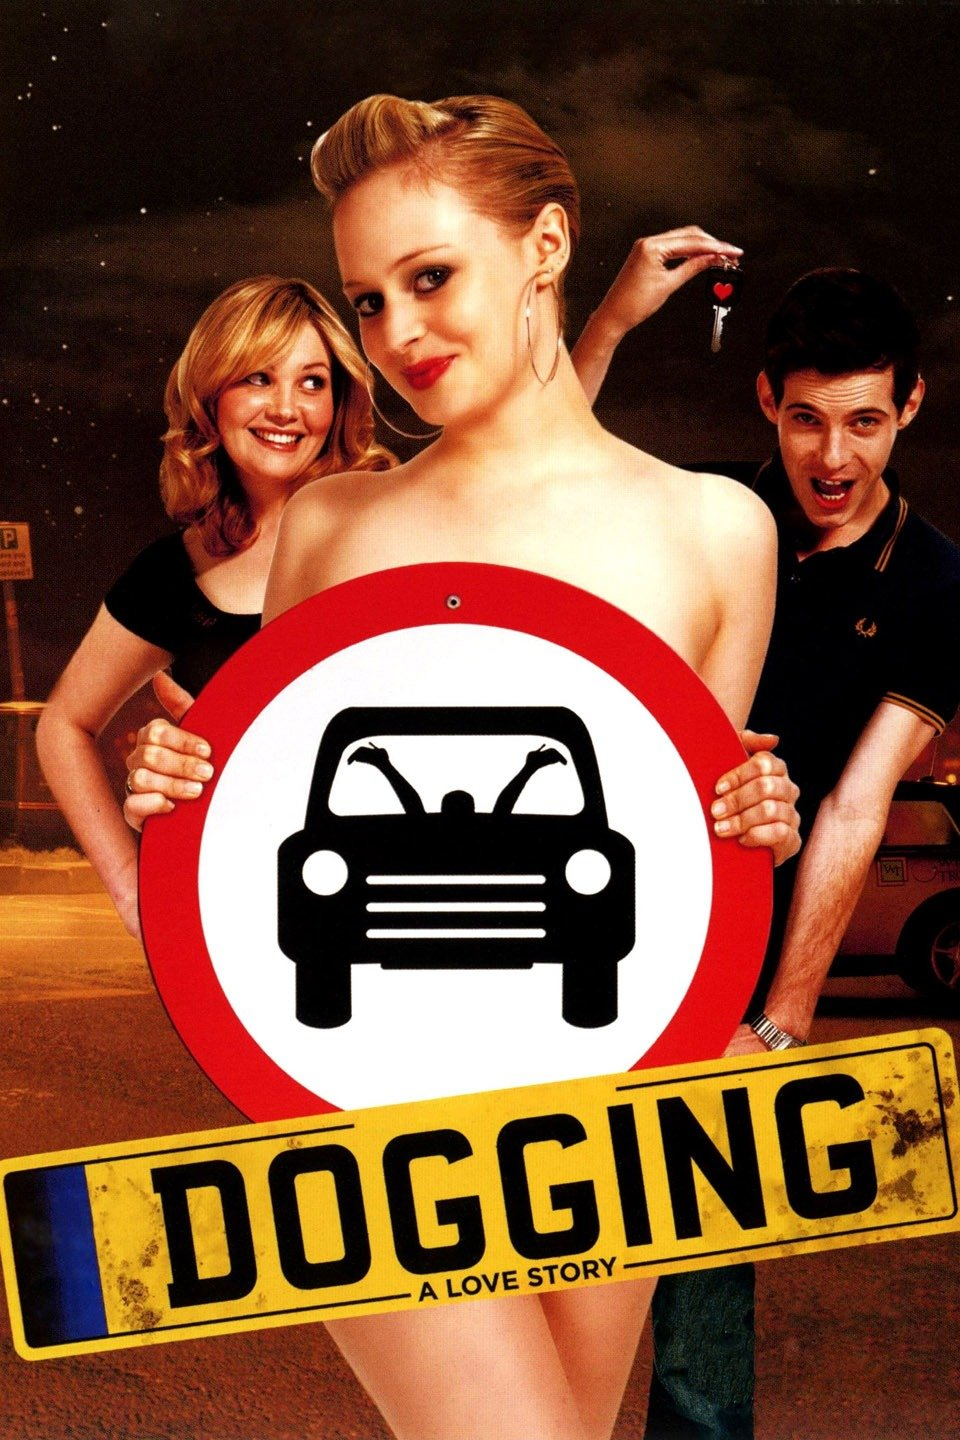 image Dogging: A Love Story Watch Full Movie Free Online